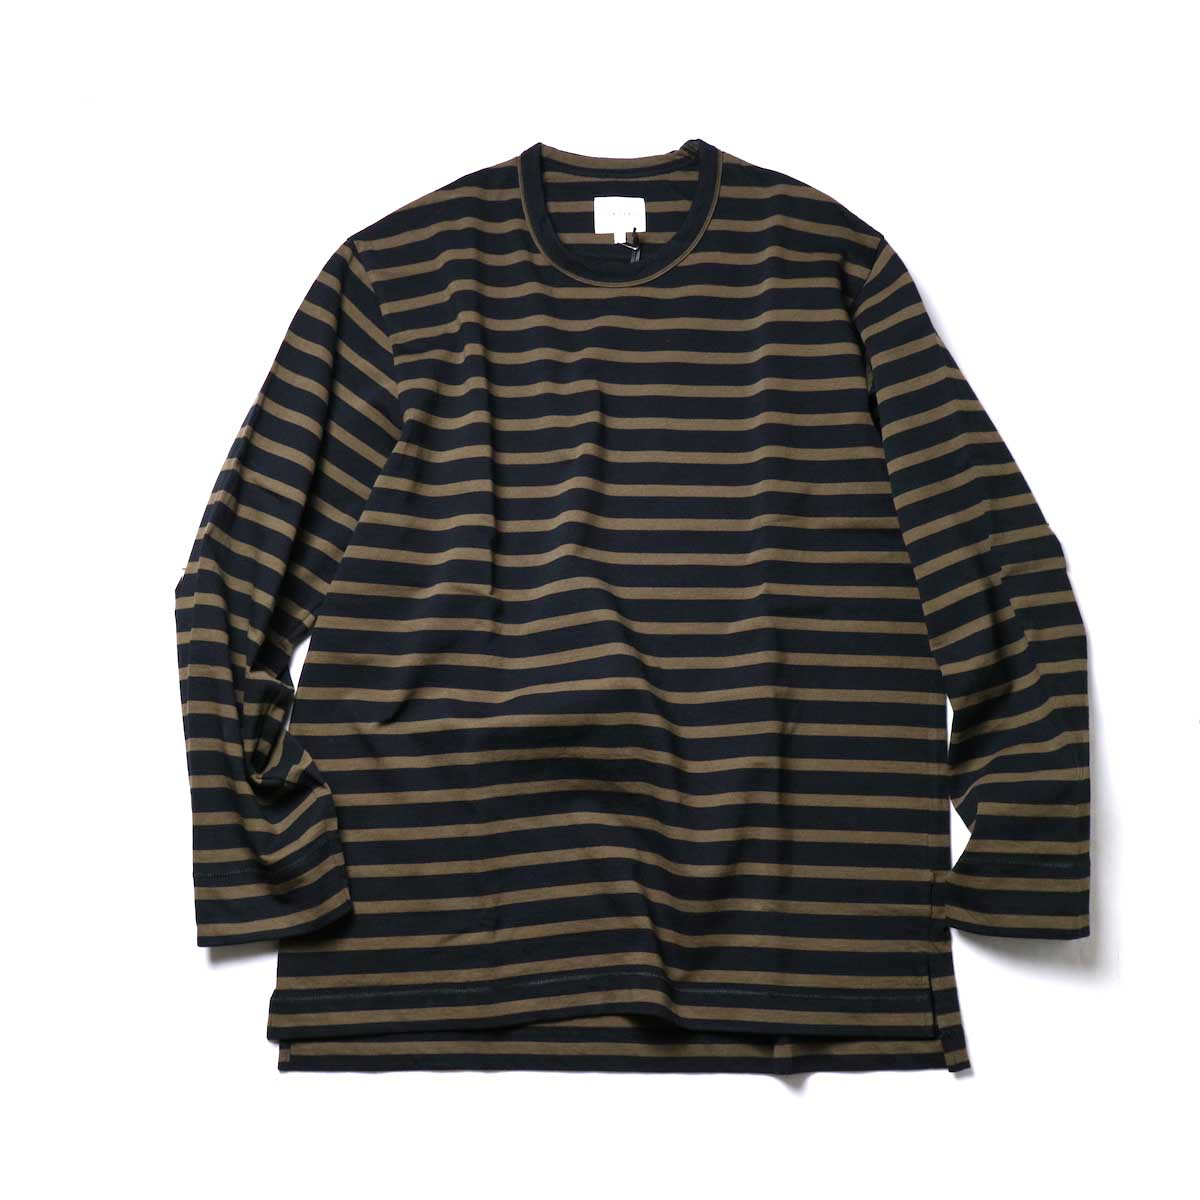 CURLY / SALFORD L/S BORDER TEE (Black / Olive)